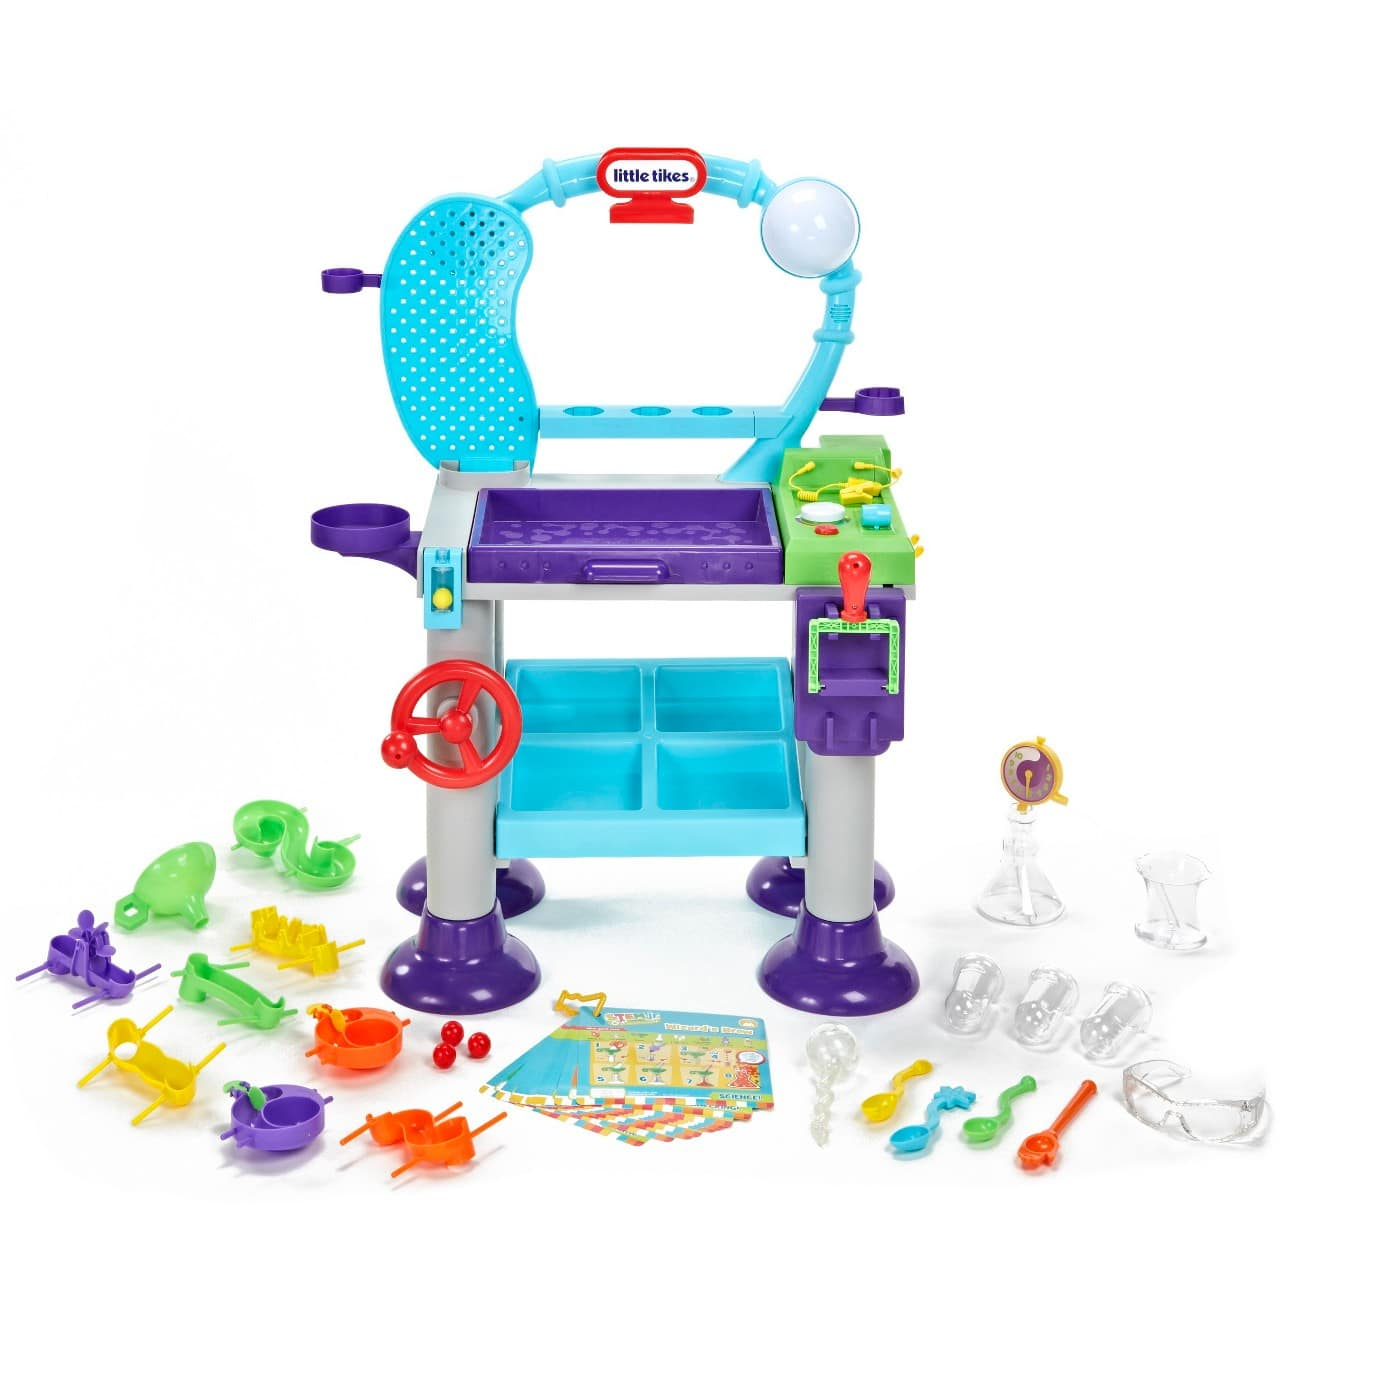 YMMV Target - Little Tikes STEM Junior Wonder Lab Toy with Experiments for Kids $35.98